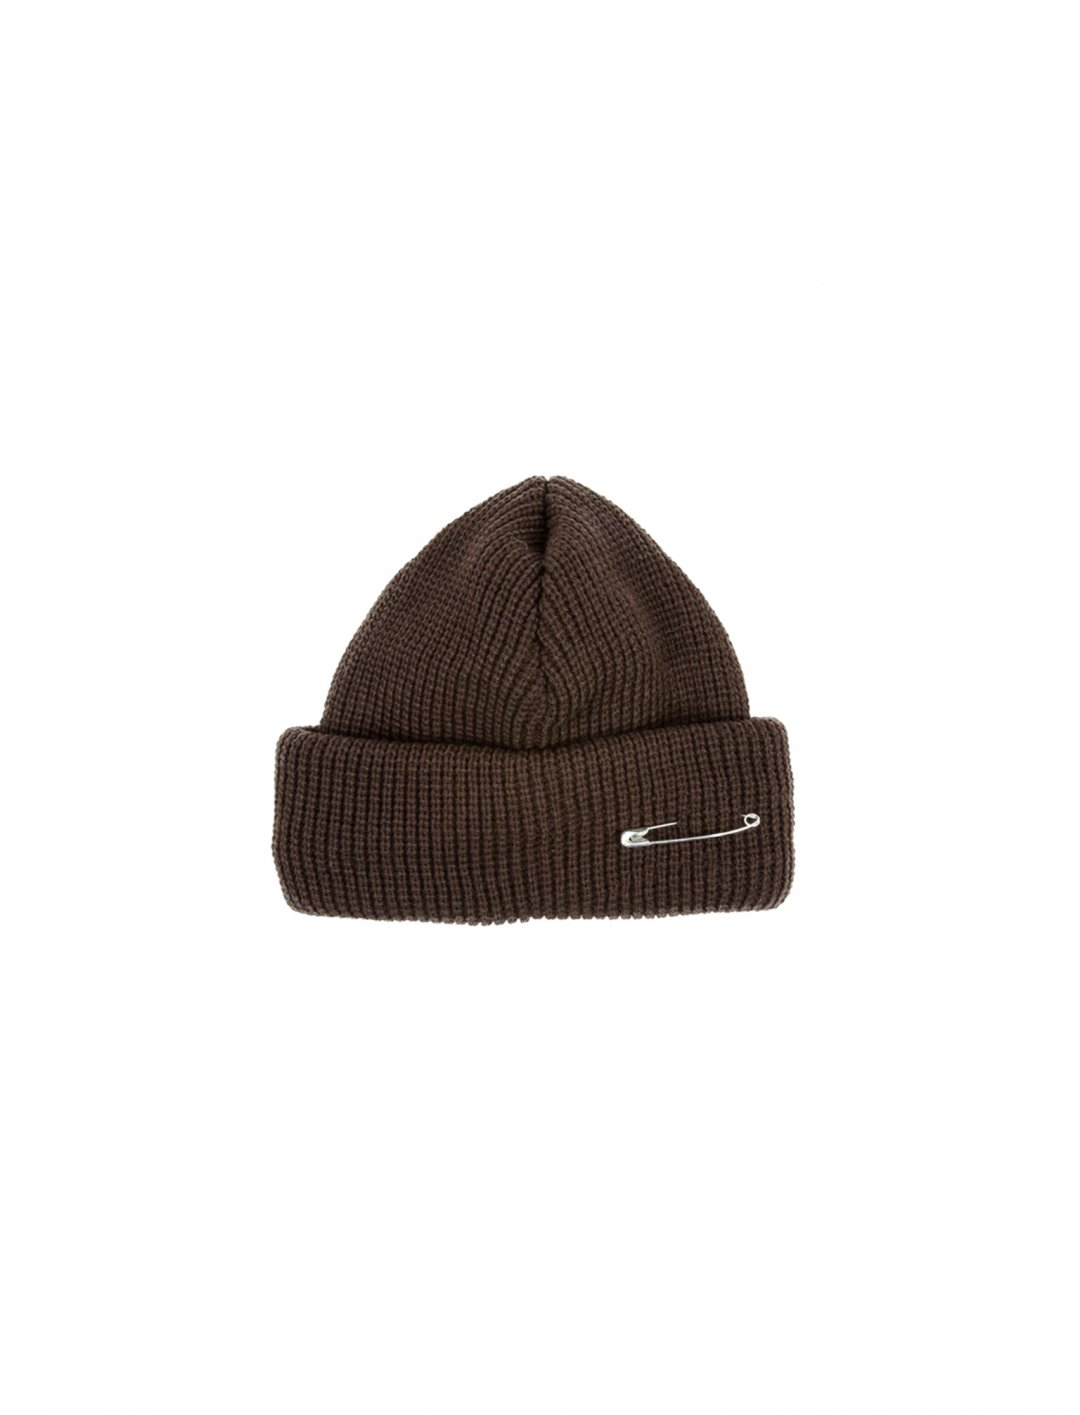 "Justin Timberlake's Beanie {""id"":16,""product_section_id"":1,""name"":""Accessories"",""order"":15} Maybe Tommorow"